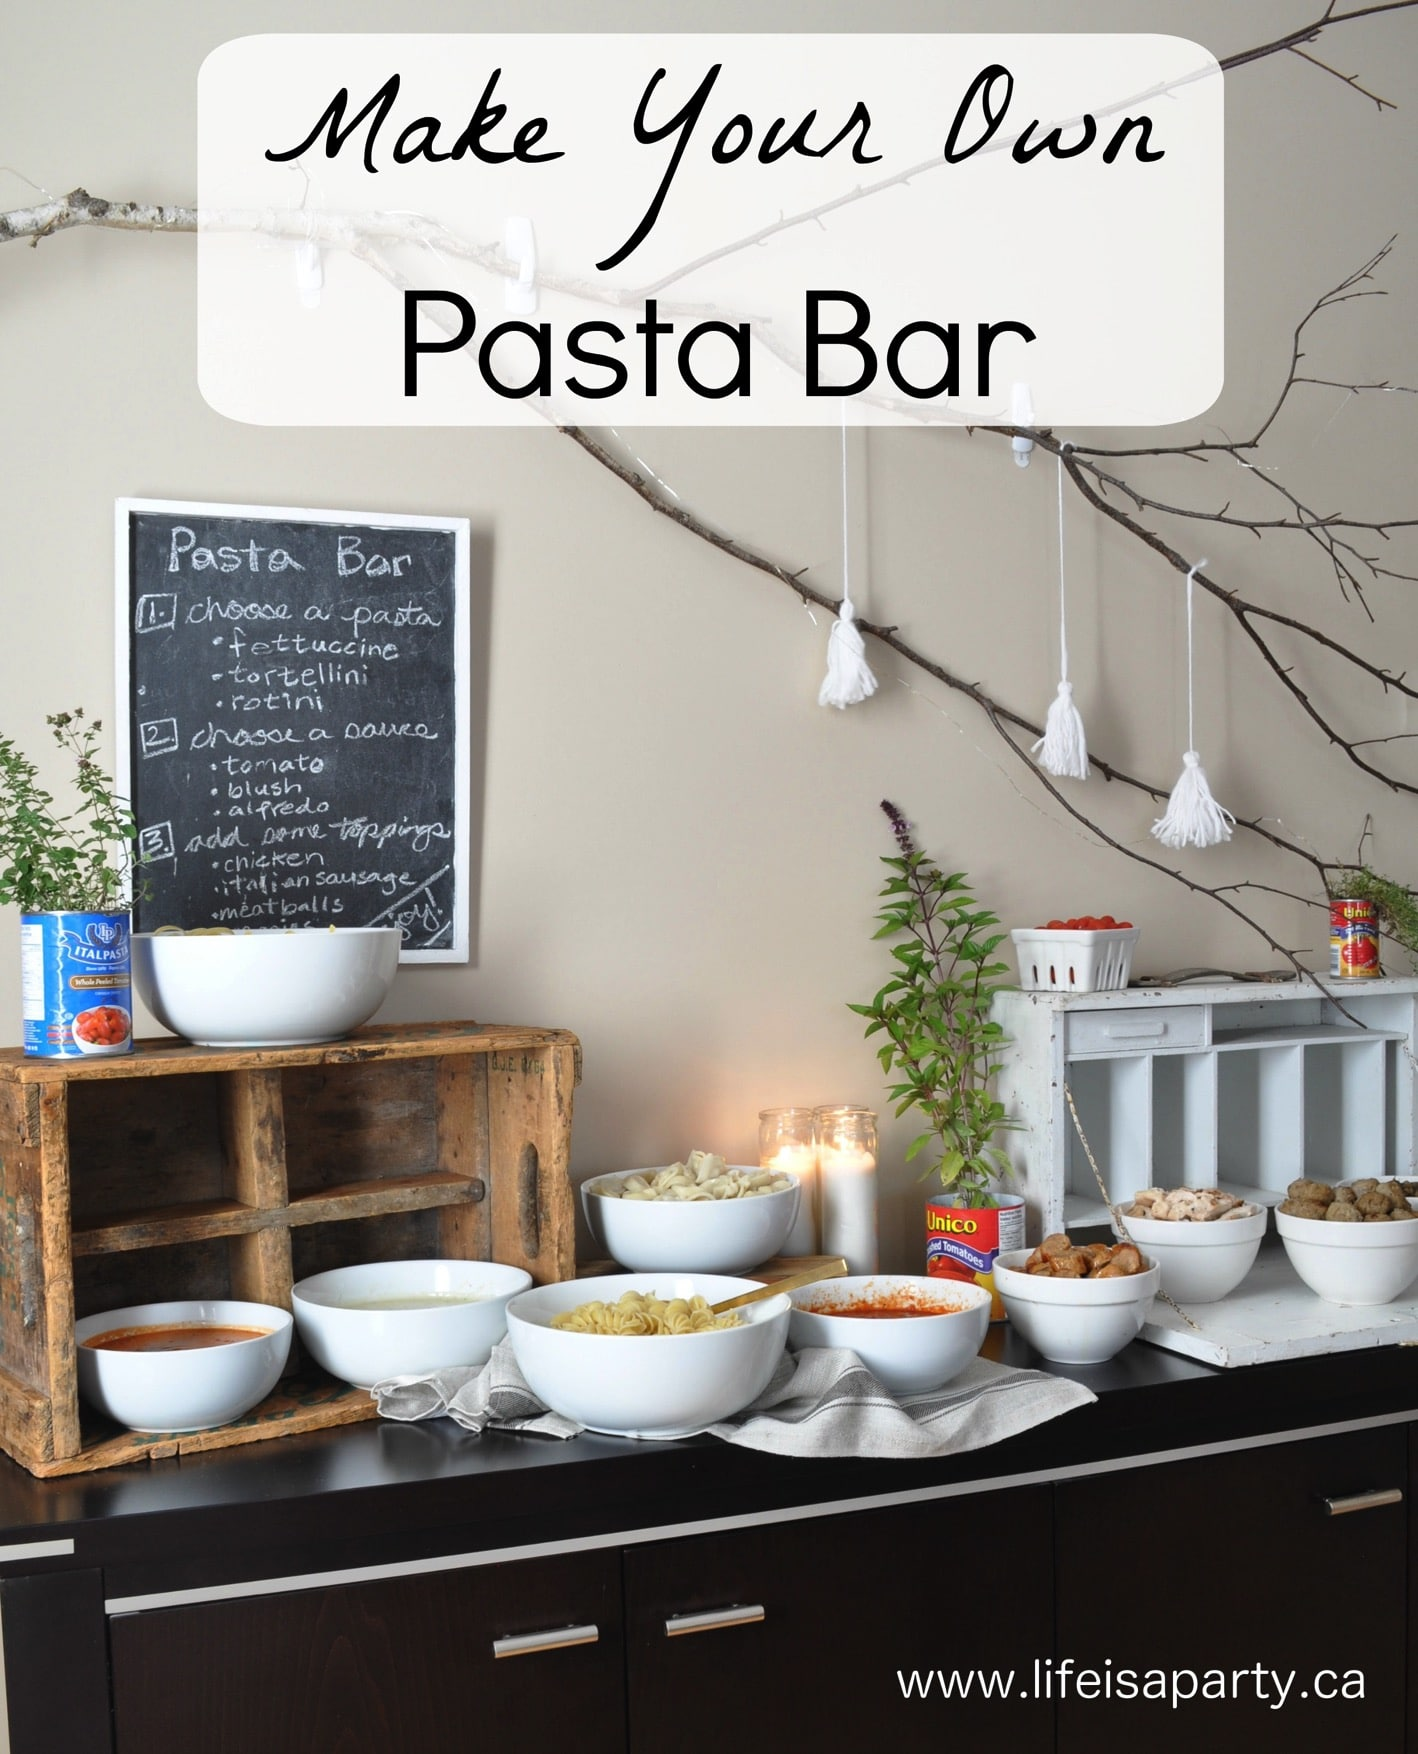 Geburtstag Party Set Make Your Own Pasta Bar Party